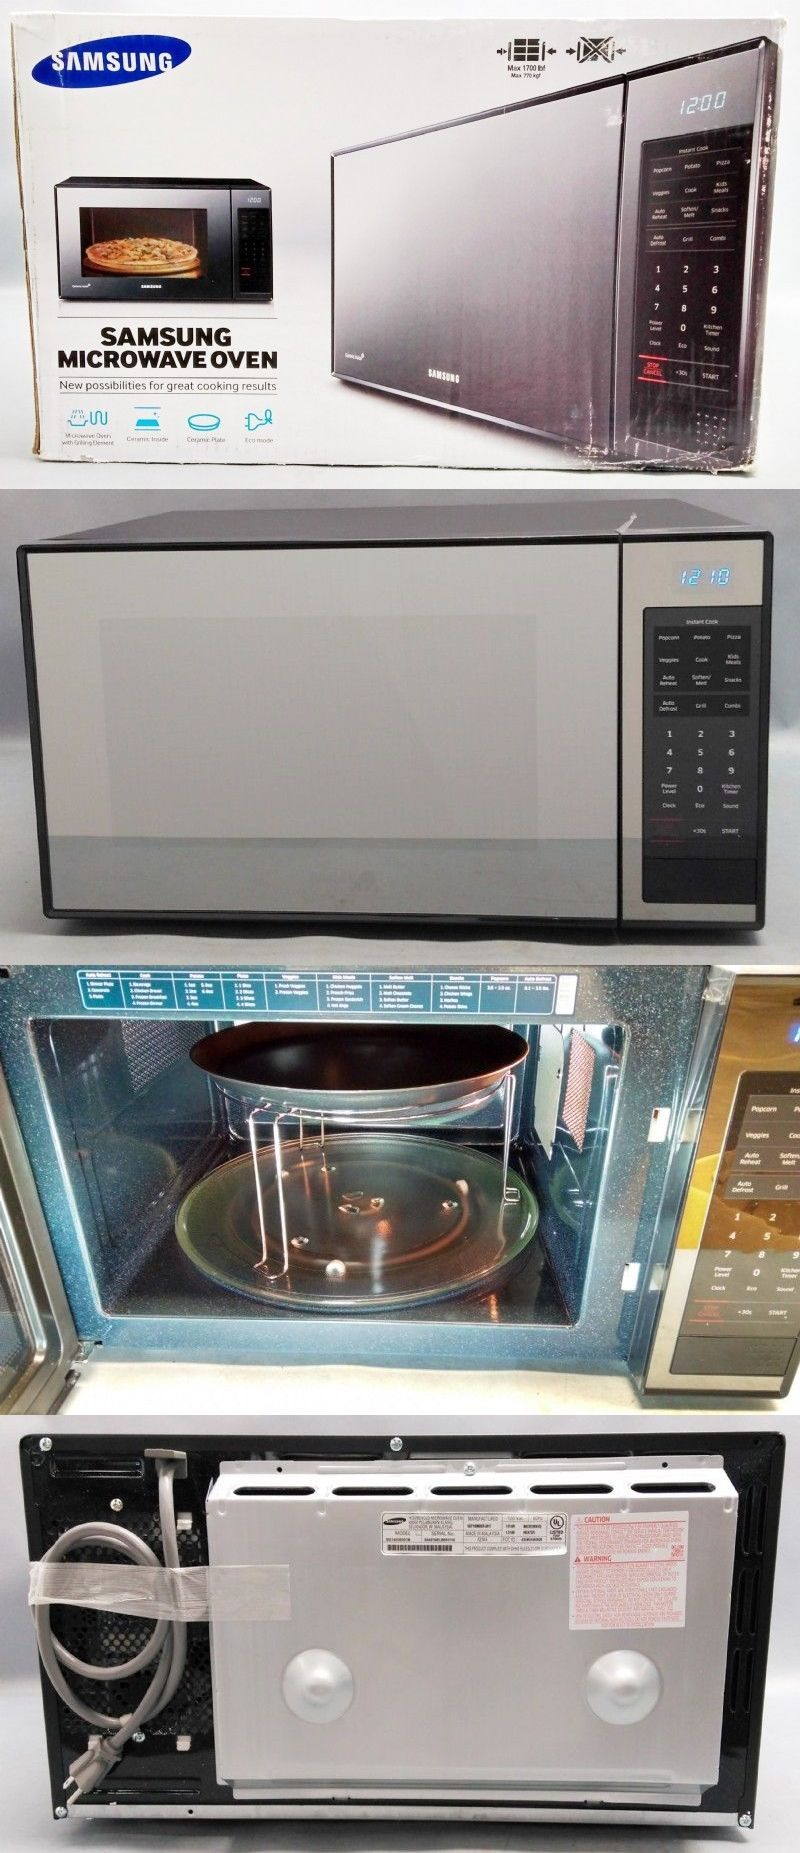 Microwave Ovens 150140 Samsung Mg14h3020cm 1 4 Cu Ft Countertop